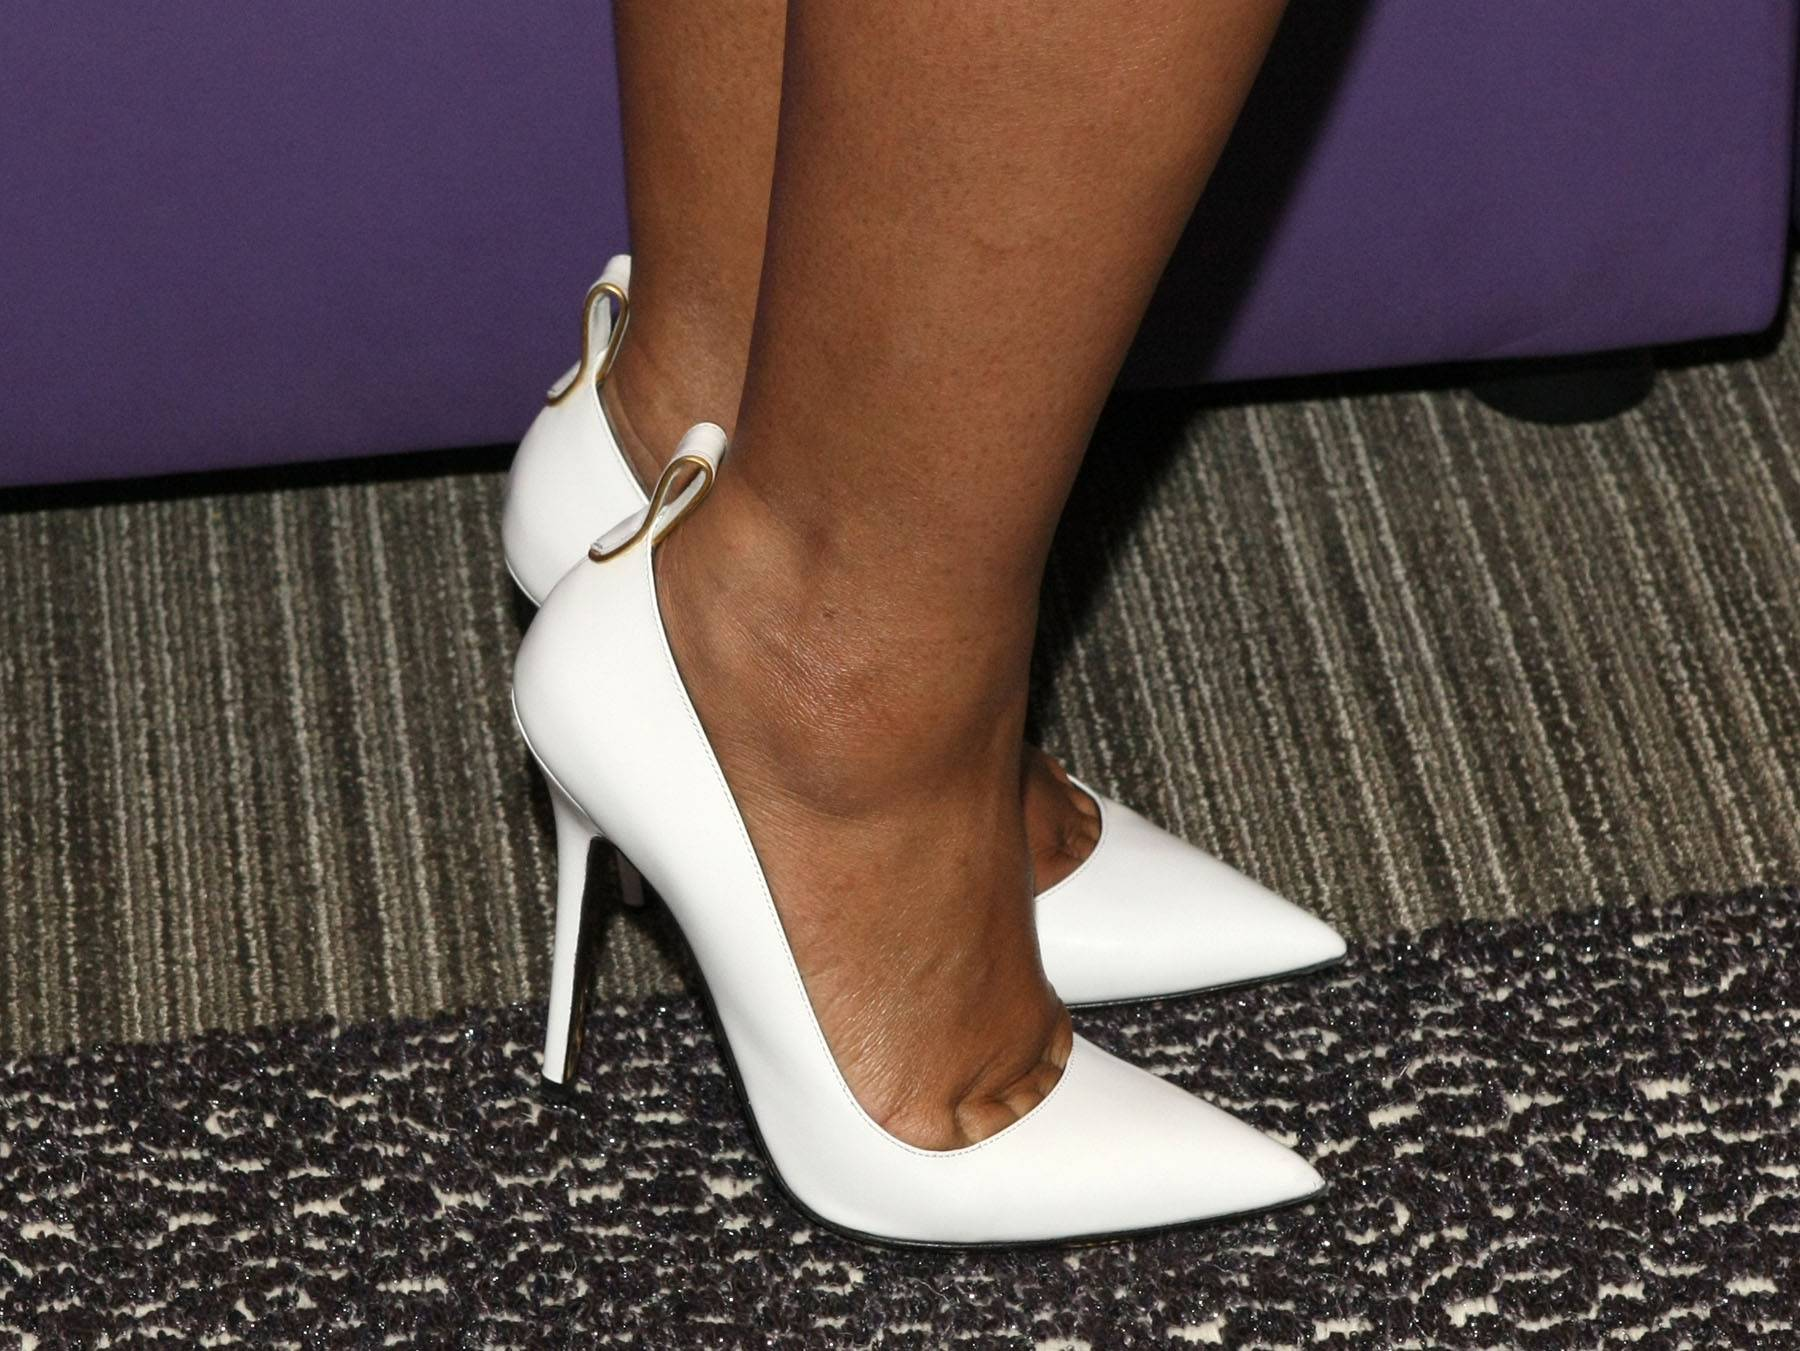 Ahead of the Curve - Tamar rocks some white heels while on 106. (Photo: Bennett Raglin/BET/Getty Images for BET)